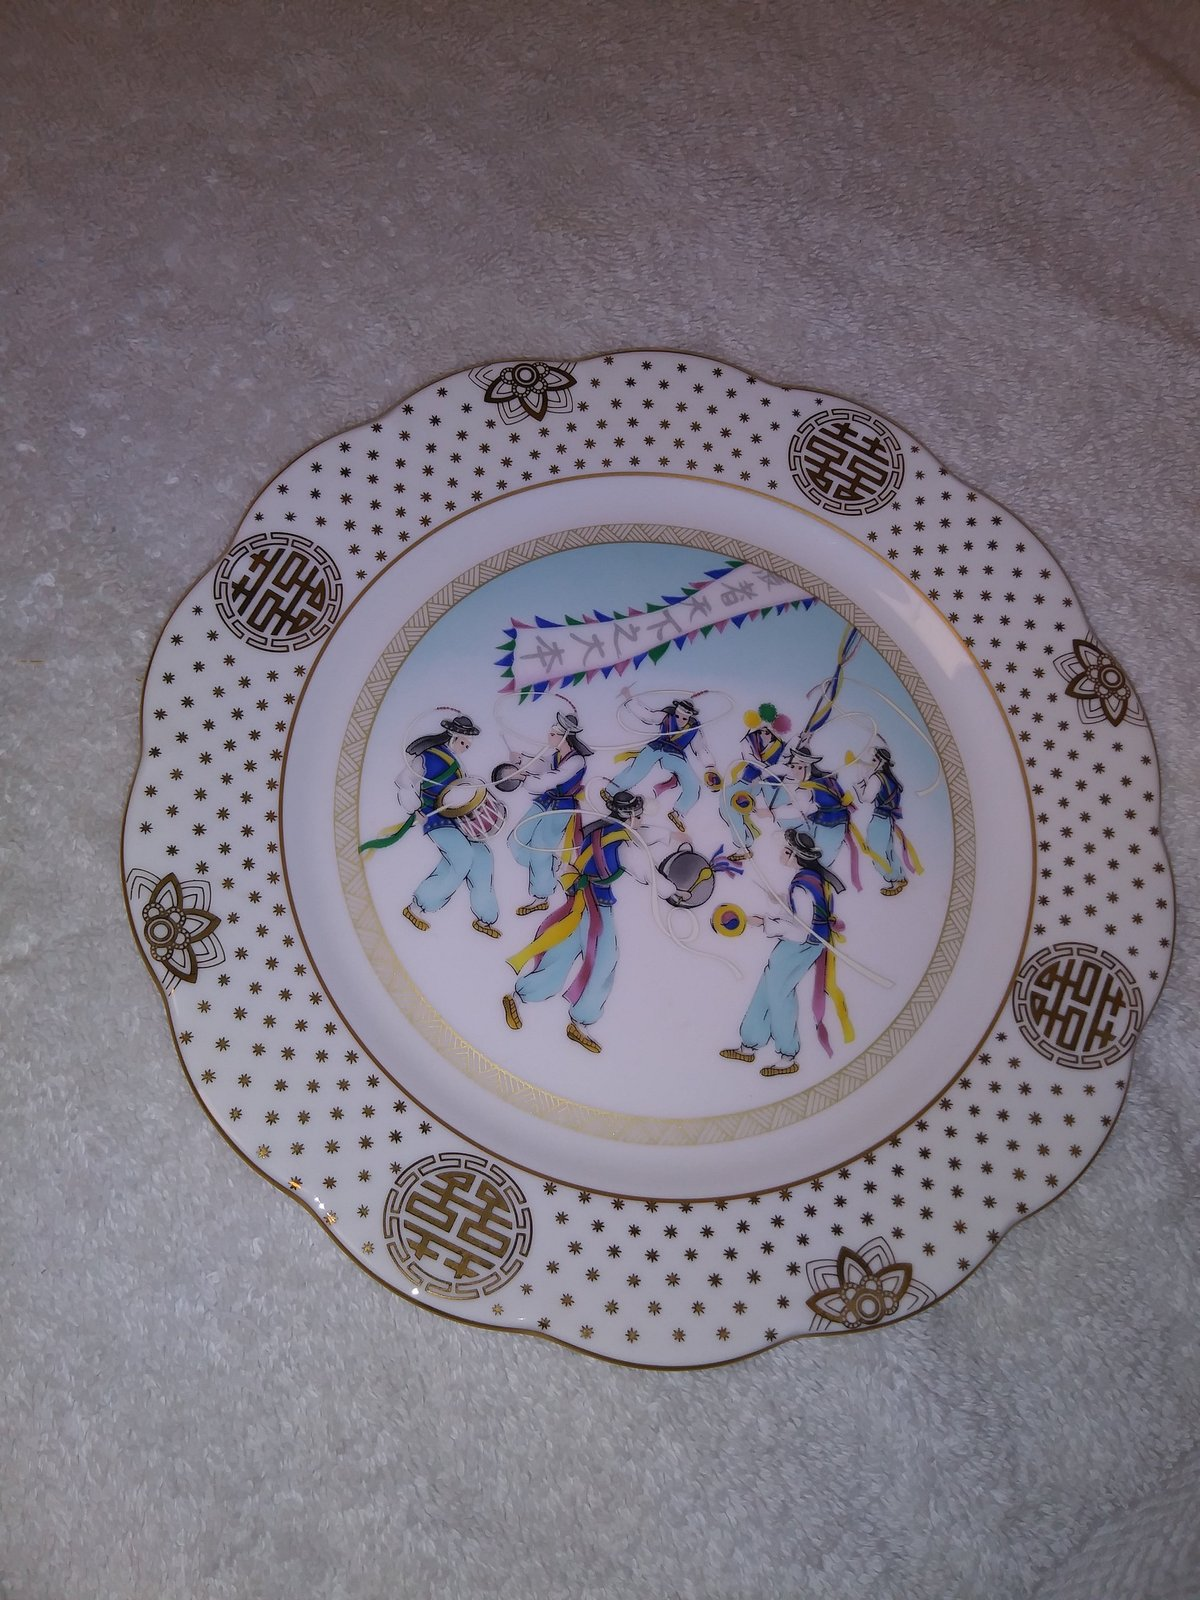 Farm Dance H. Hankook Plate Fine Bone China Natural Bone Ash England Original Pl